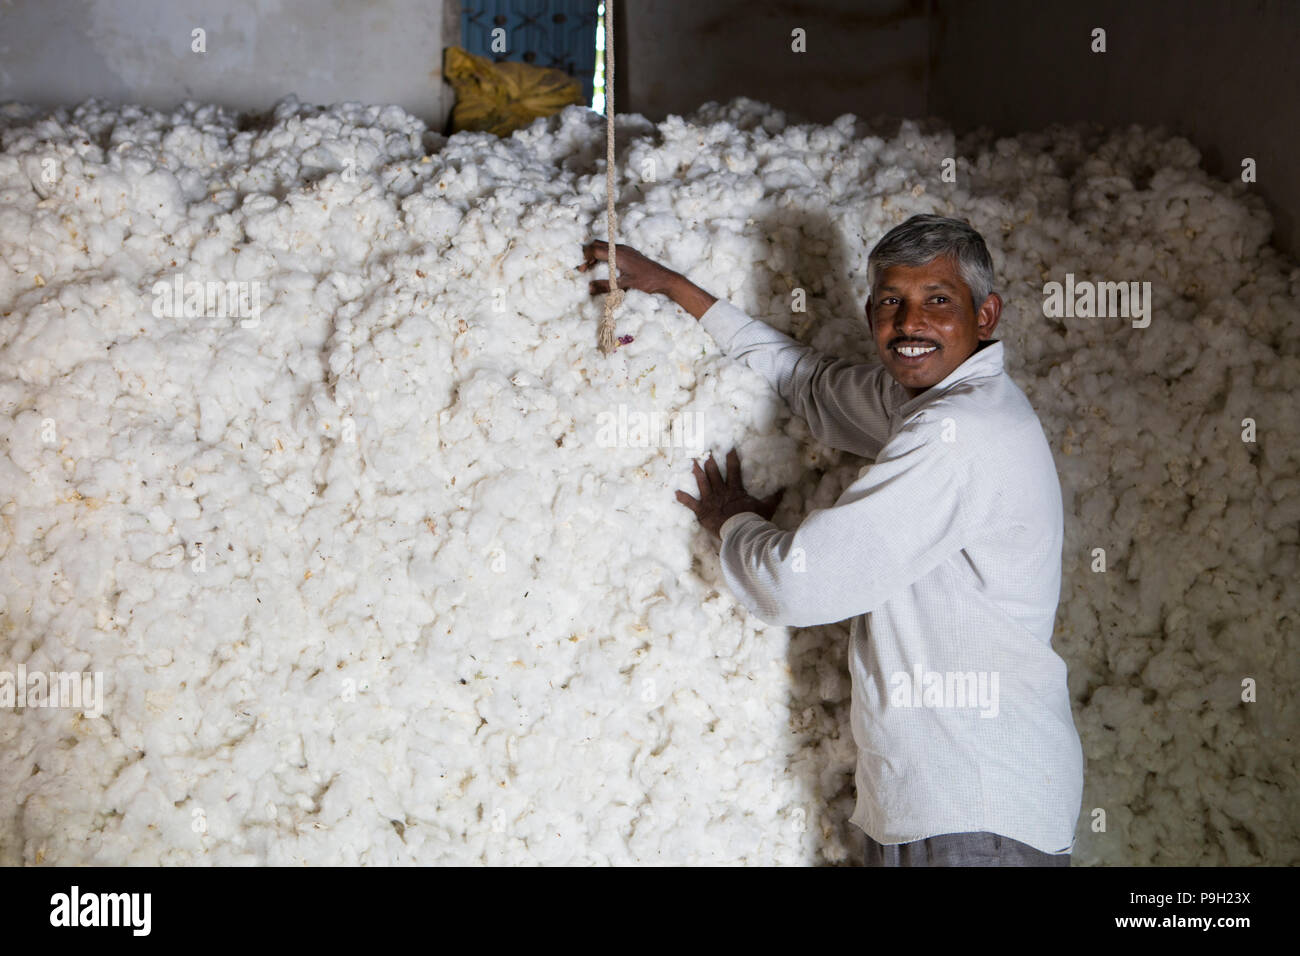 A cotton farmer storing his cotton harvest, Ahmedabad, India. - Stock Image